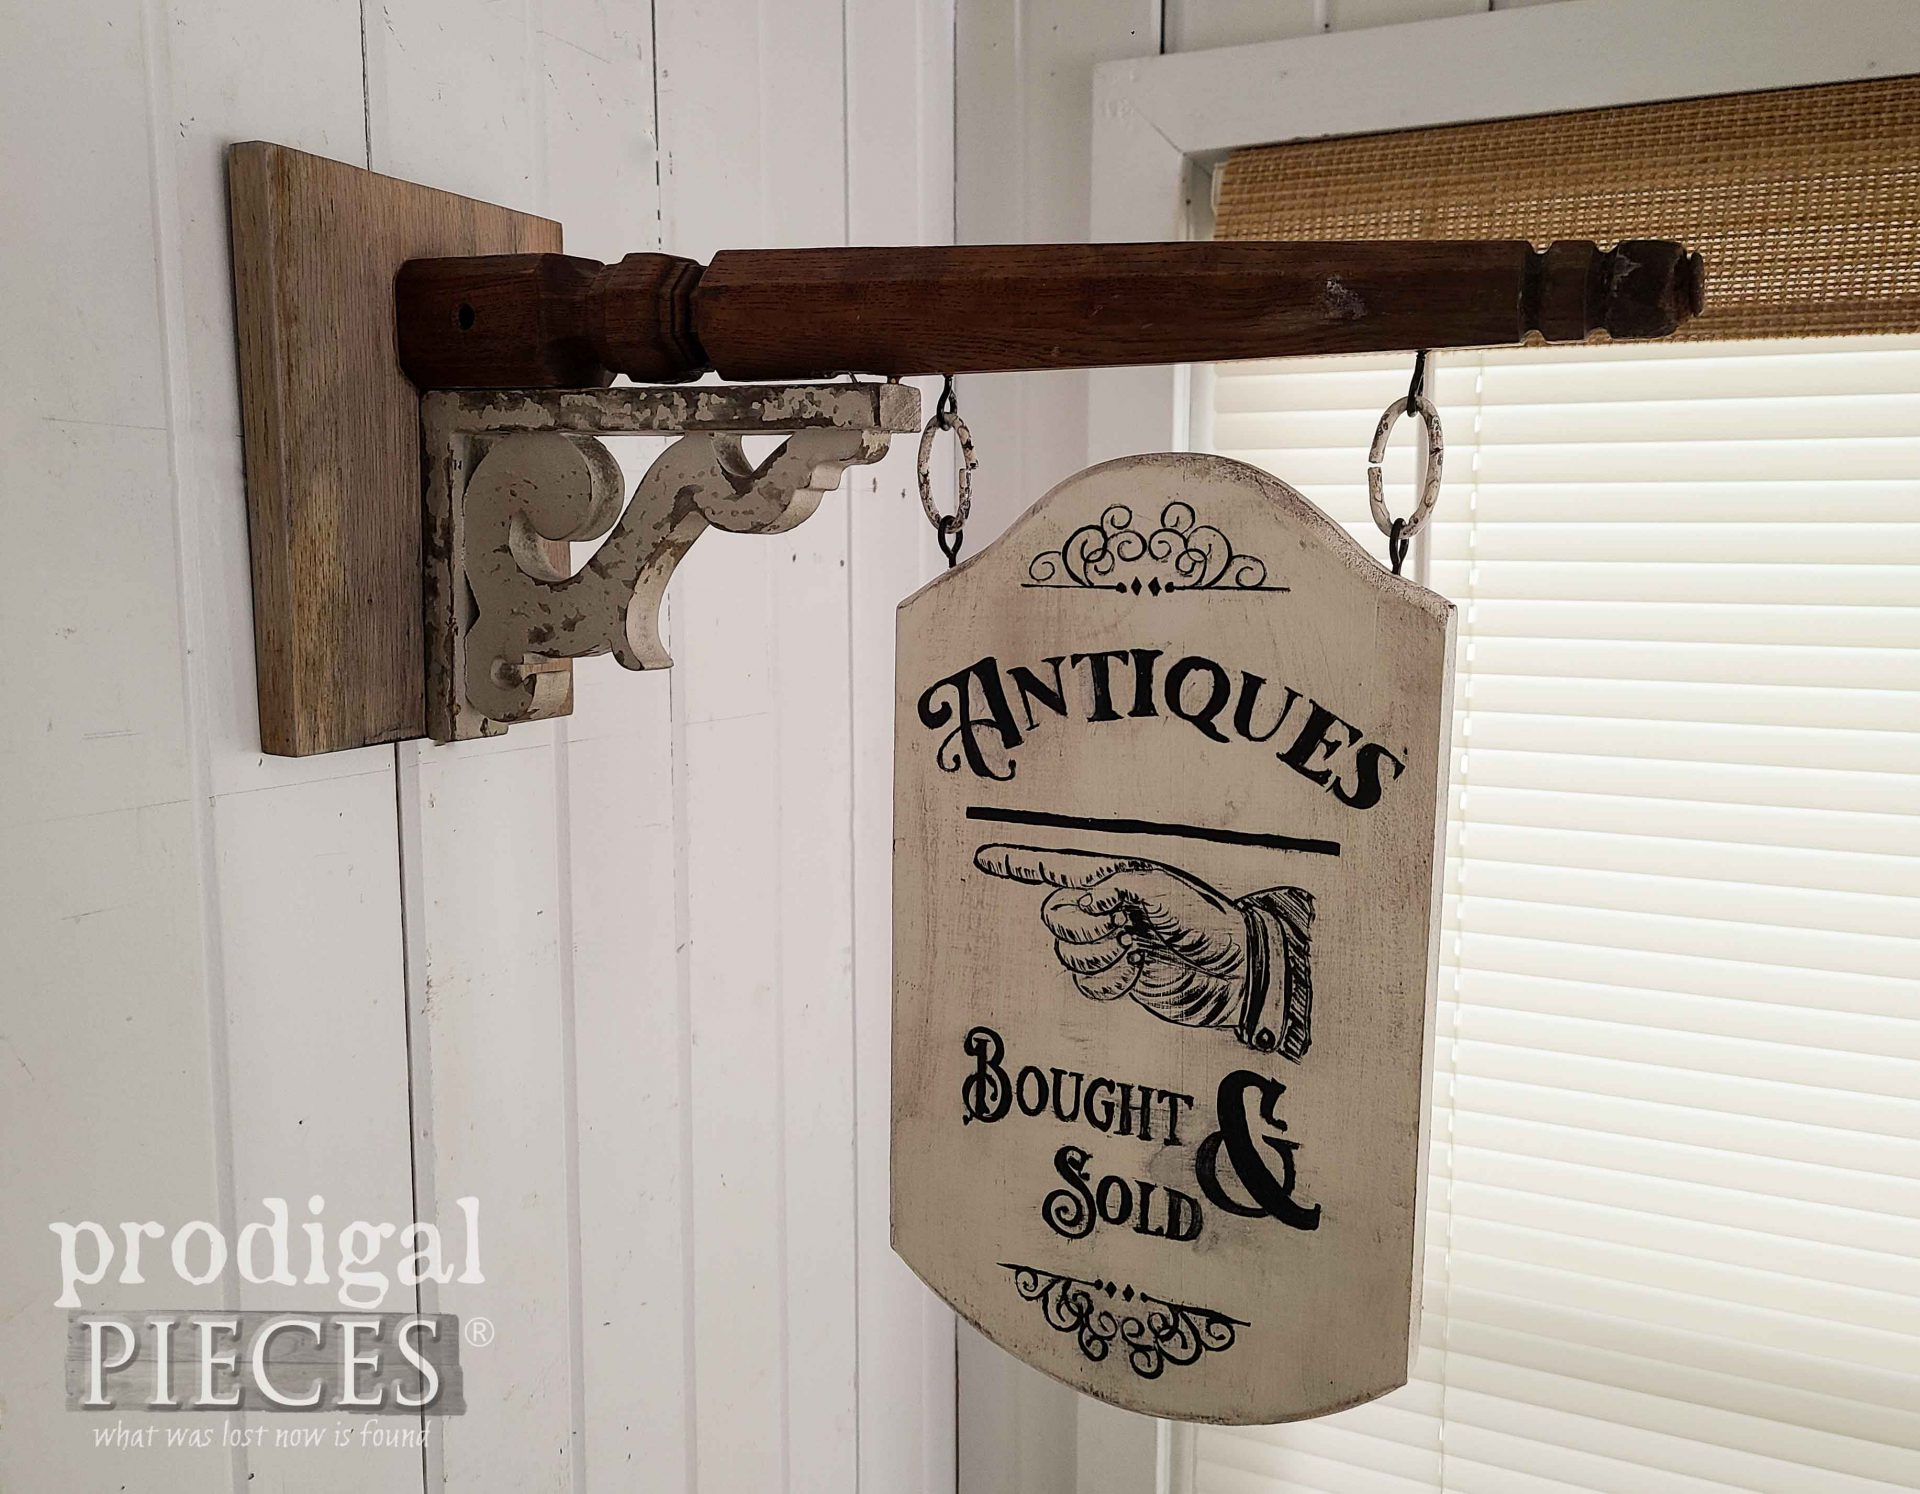 Reclaimed Antiques Sign from Upcycled Chair Legs by Larissa of Prodigal Pieces | prodigalpieces.com #prodigalpieces #farmhouse #antiuqe